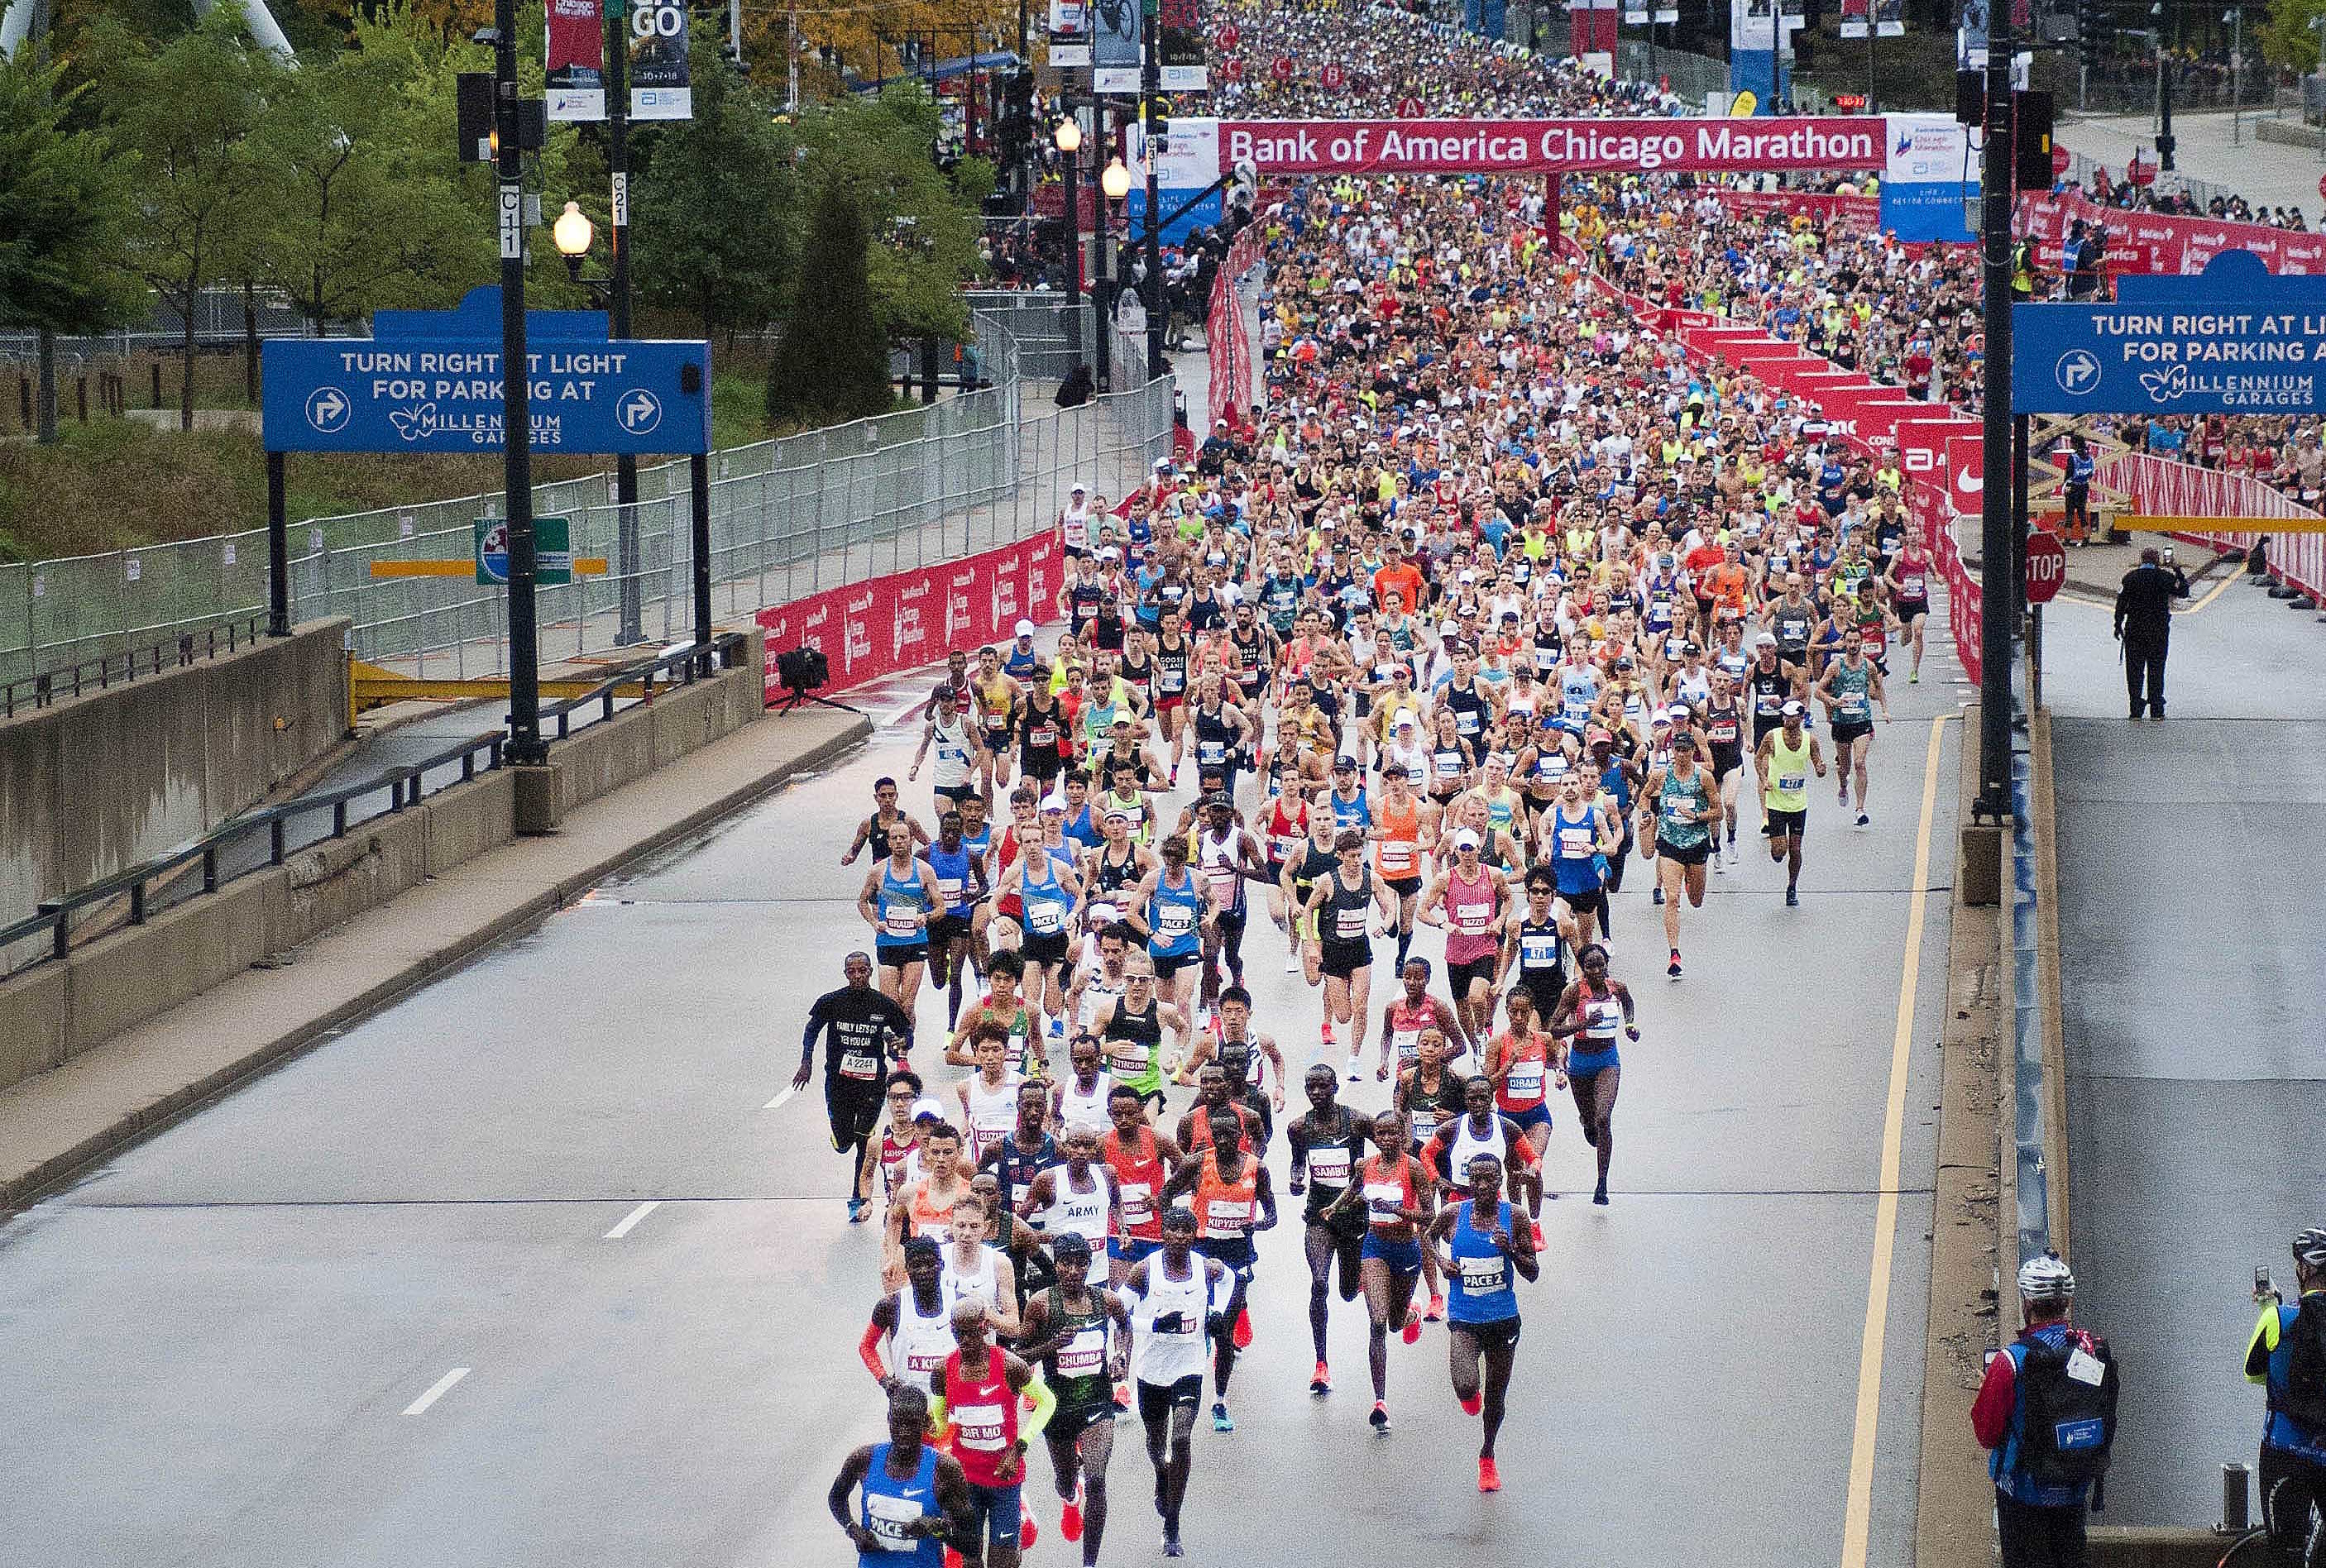 Strong field of American runners will join previously announced superstars Galen Rupp and Jordan Hasay at the Chicago Marathon on October 13